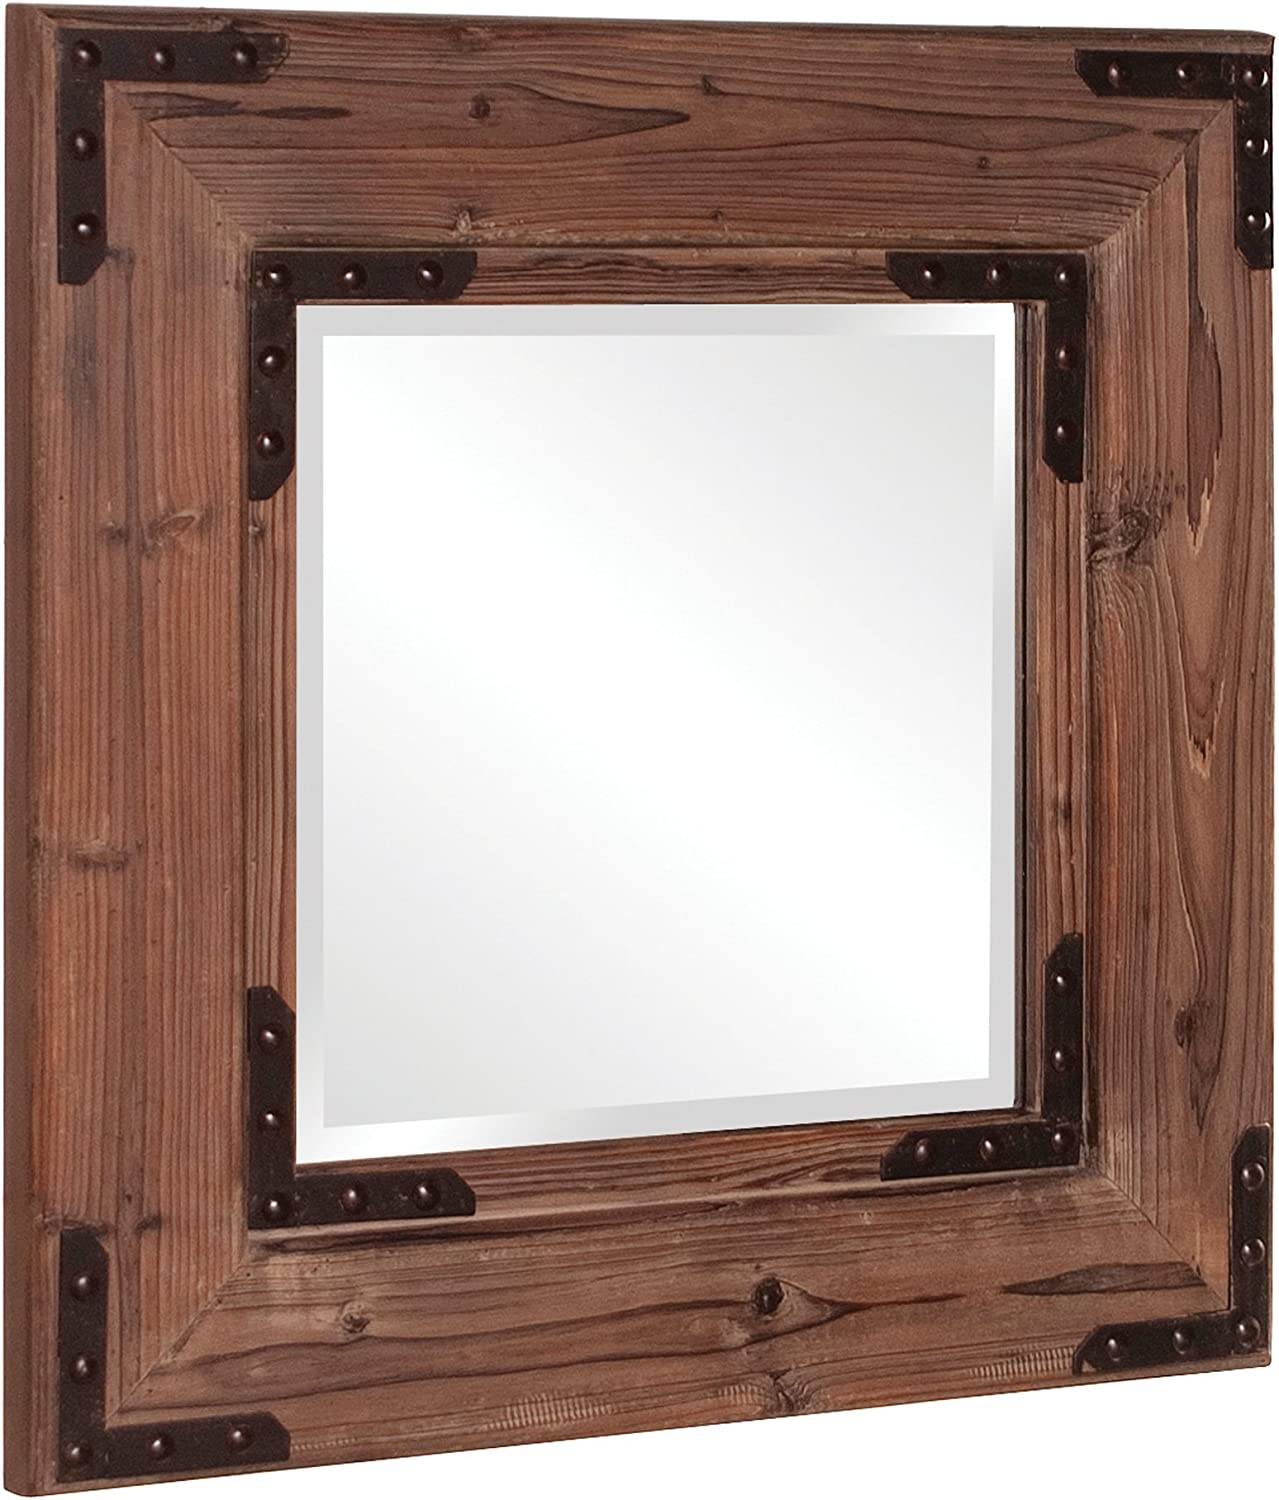 Howard Elliott 37069 Caldwell Square Mirror, Natural Wood